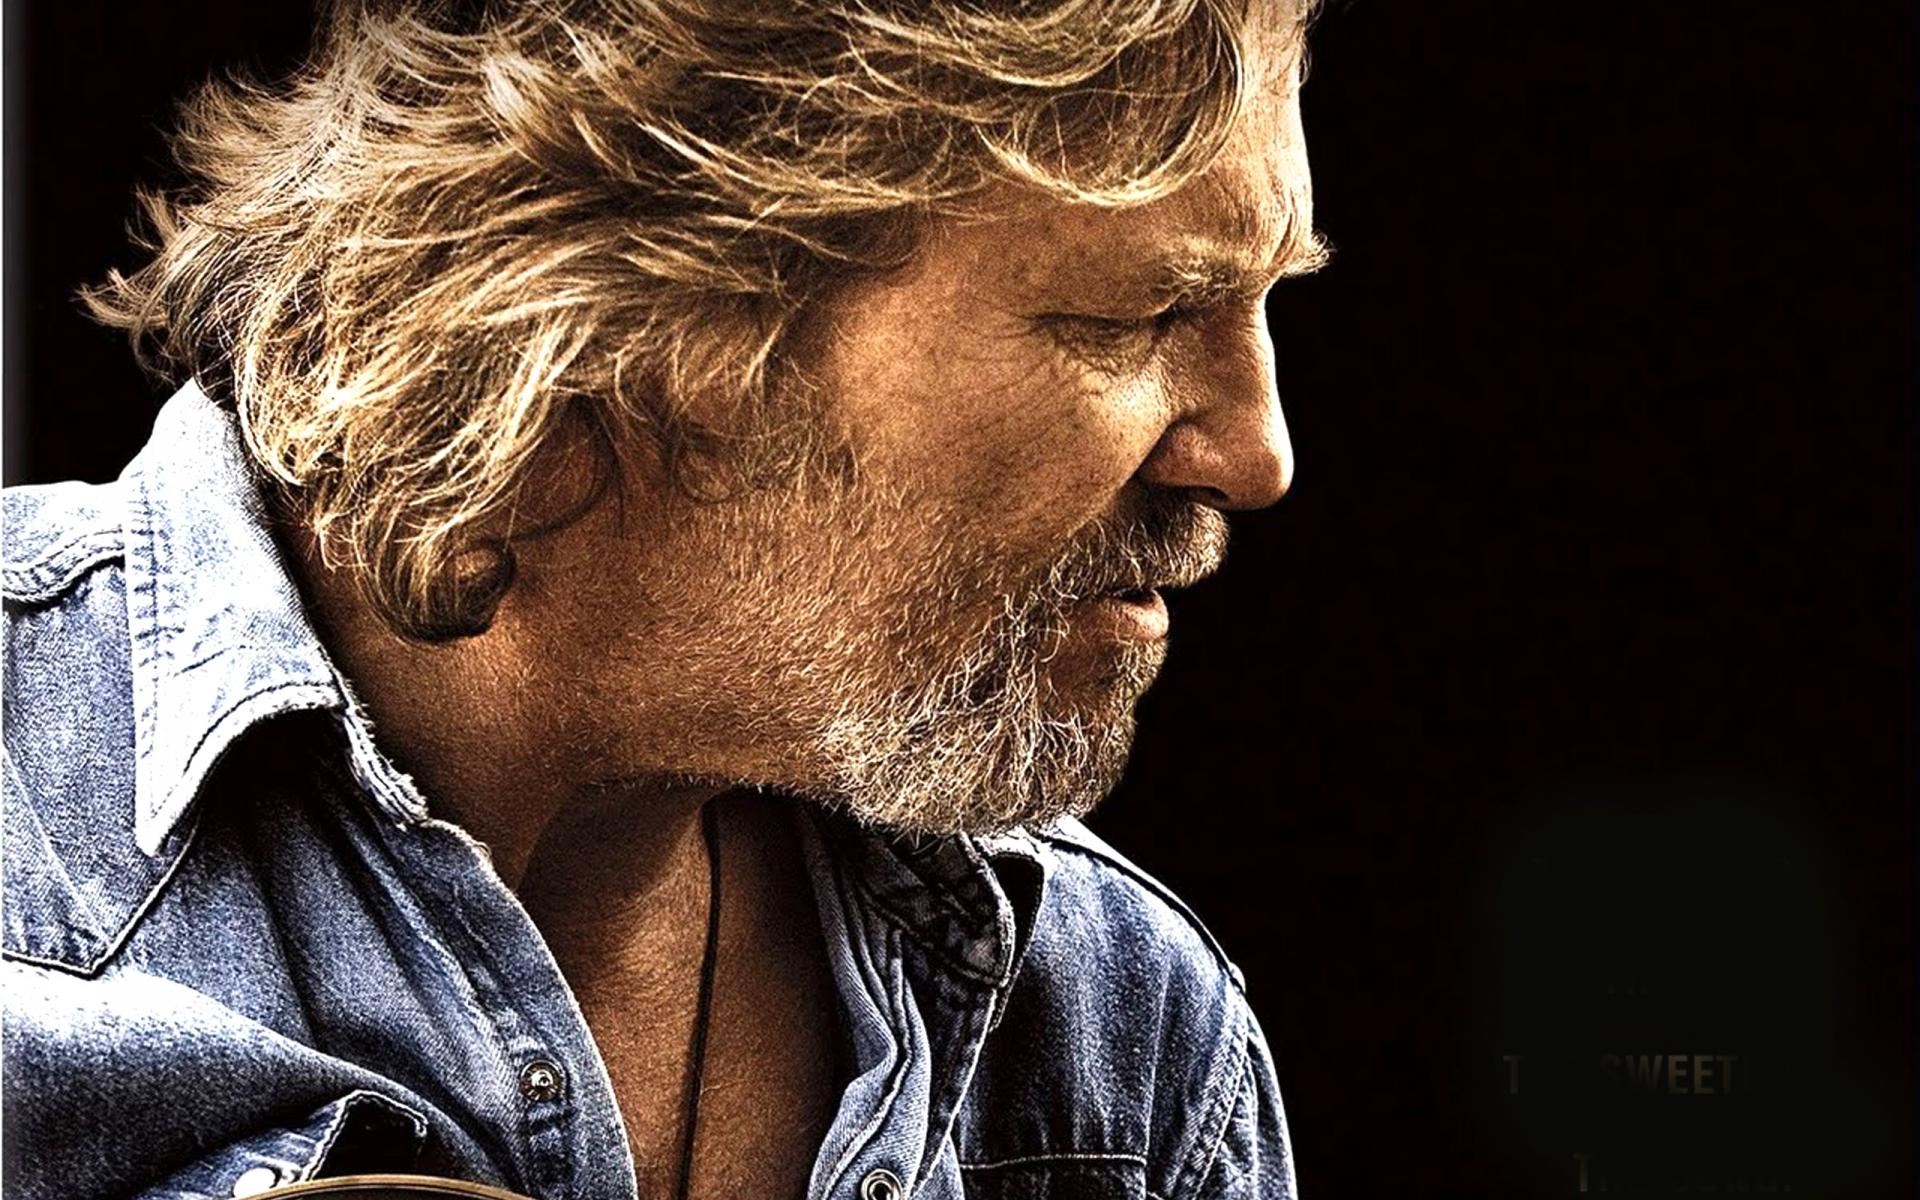 Jeff Bridges Wallpaper 10   2560 X 1920 stmednet 1920x1200